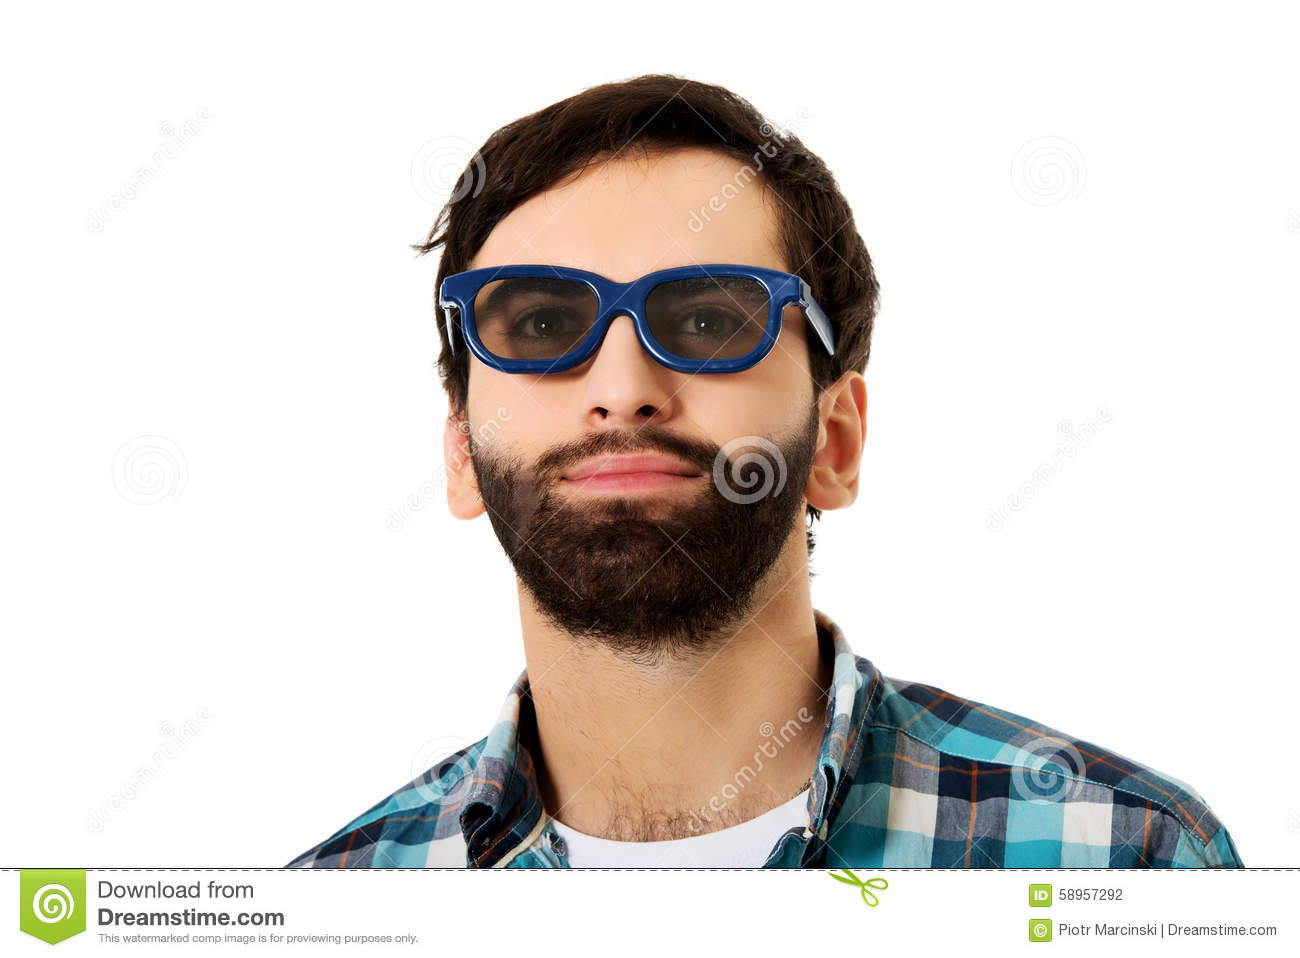 Young man with sunglasses.